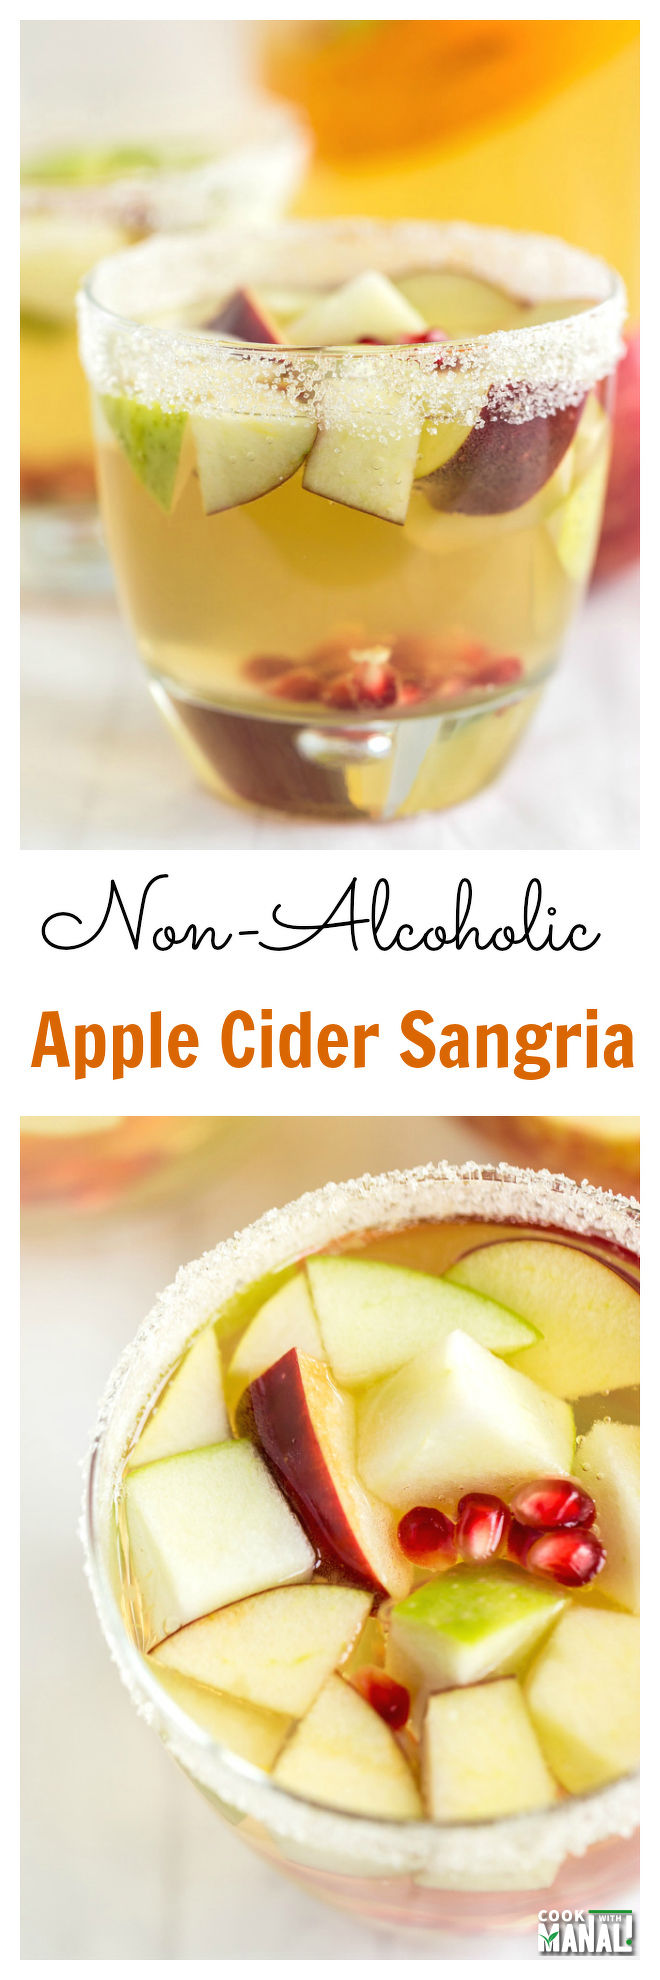 Non Alcoholic Apple Cider Sangria Collage